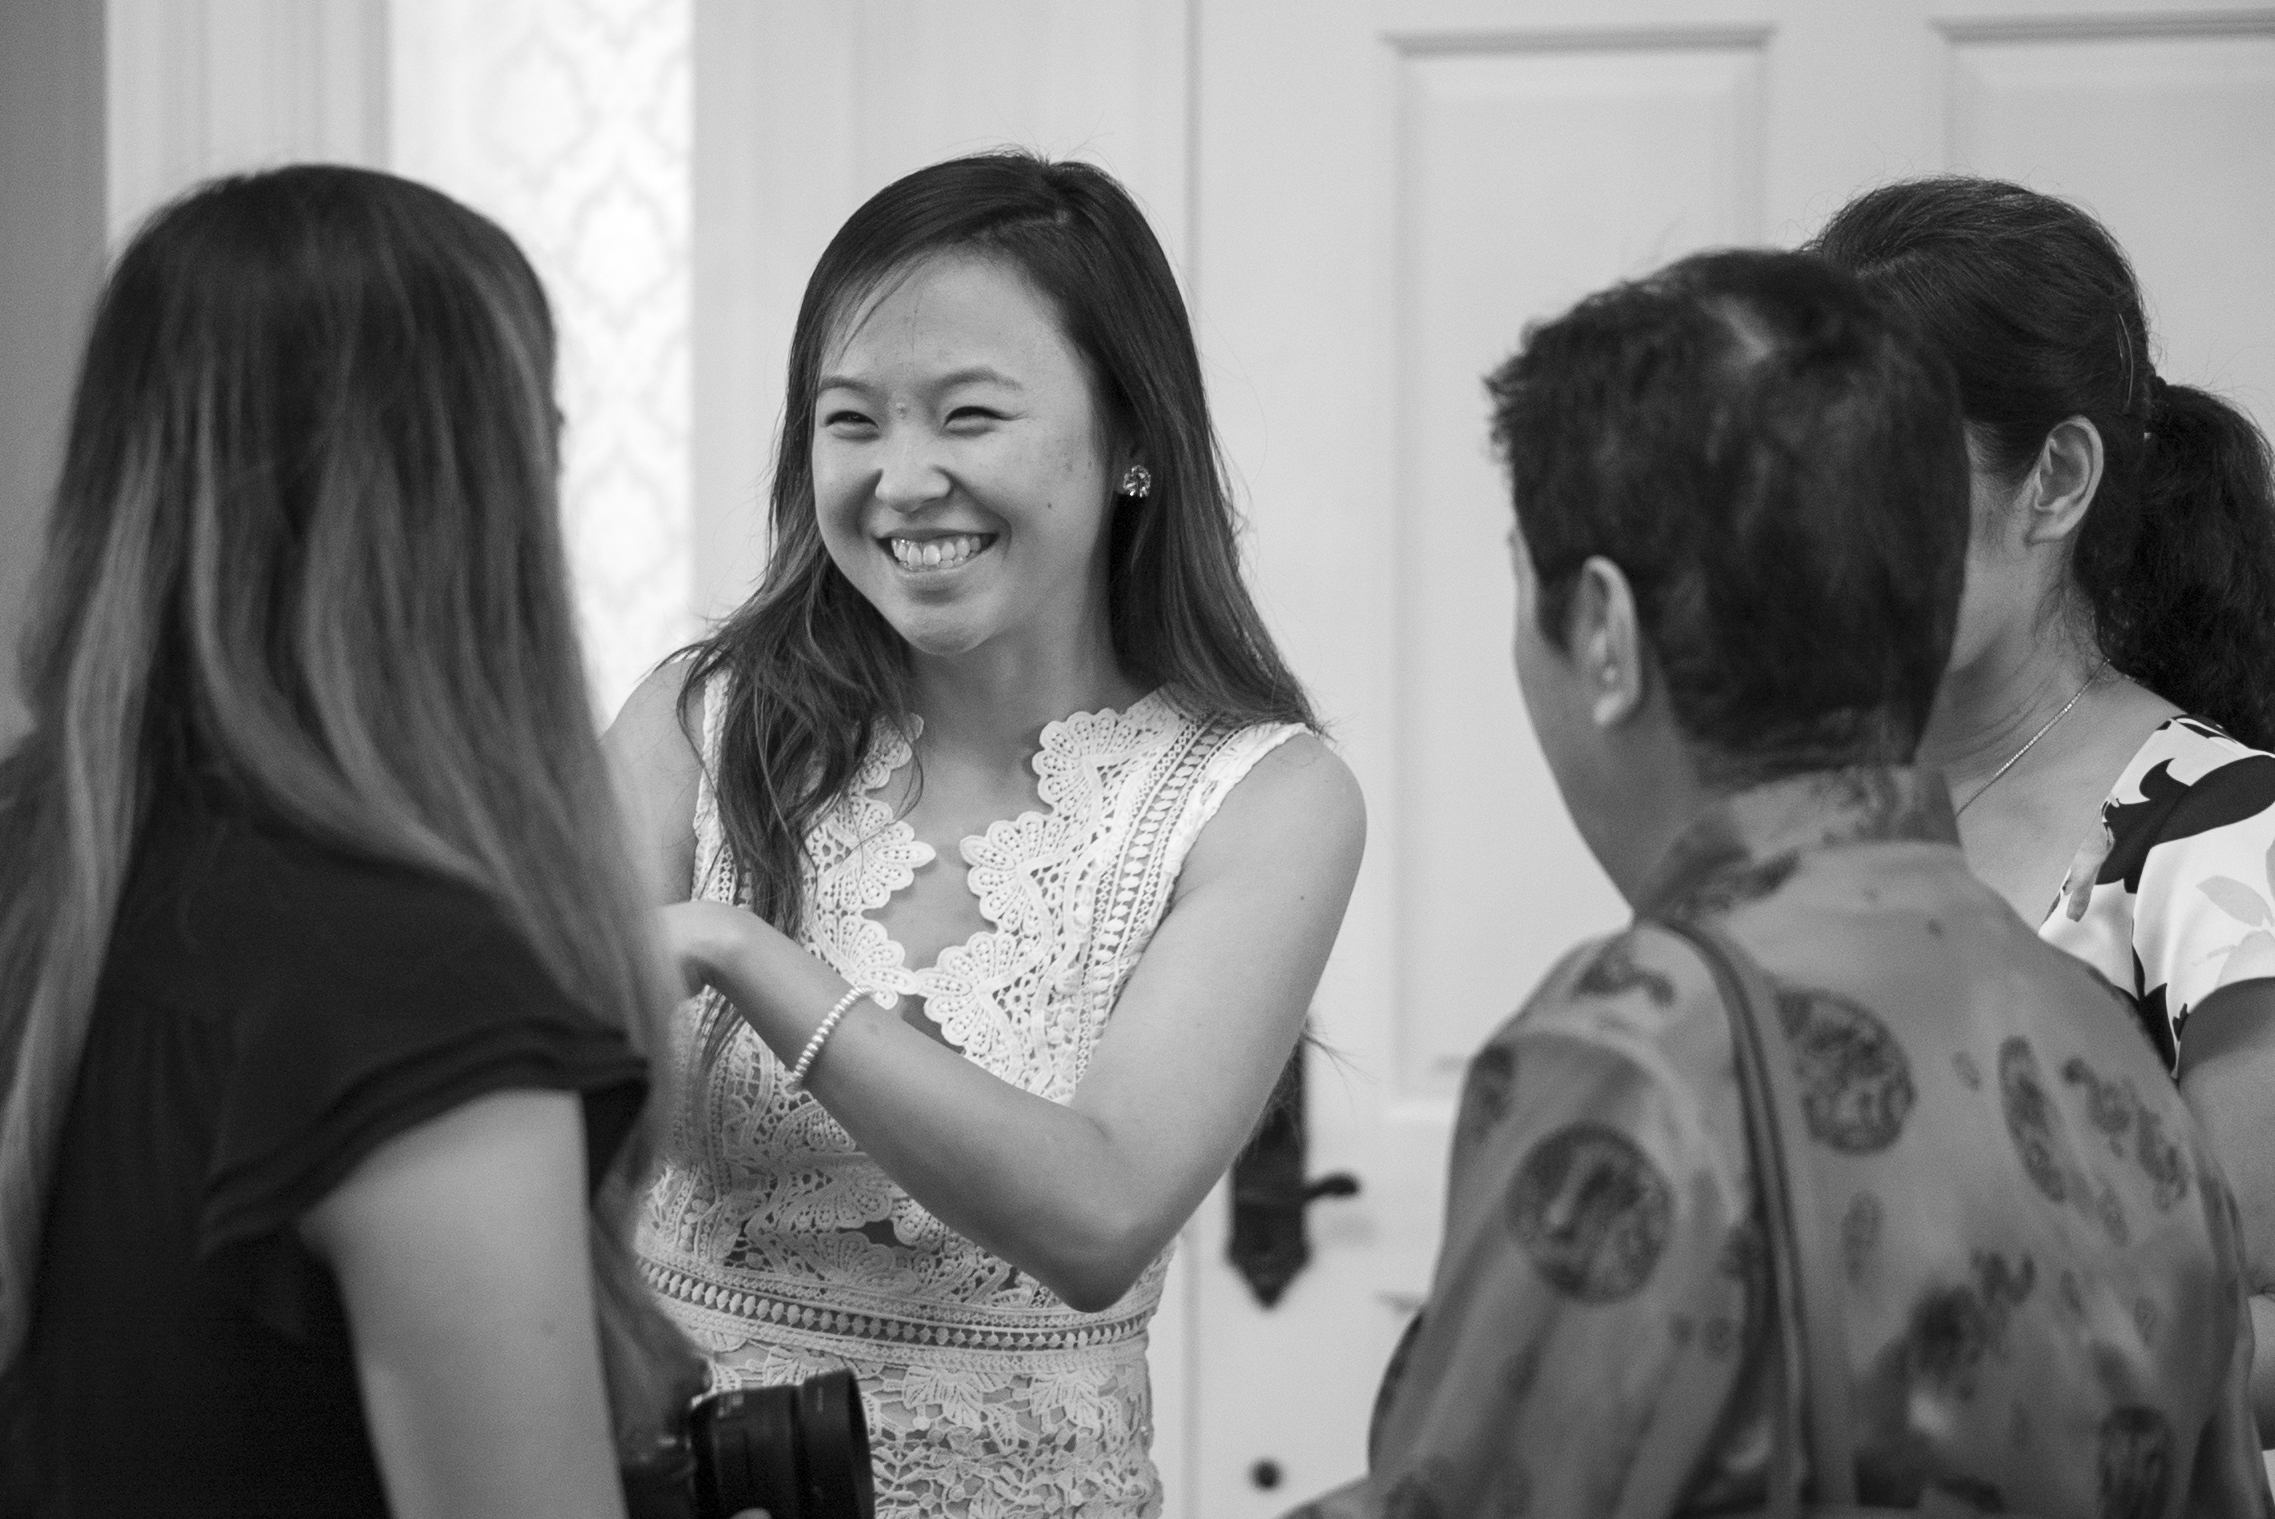 Bride-to-be Catherine shares a laugh with long-distance relatives.